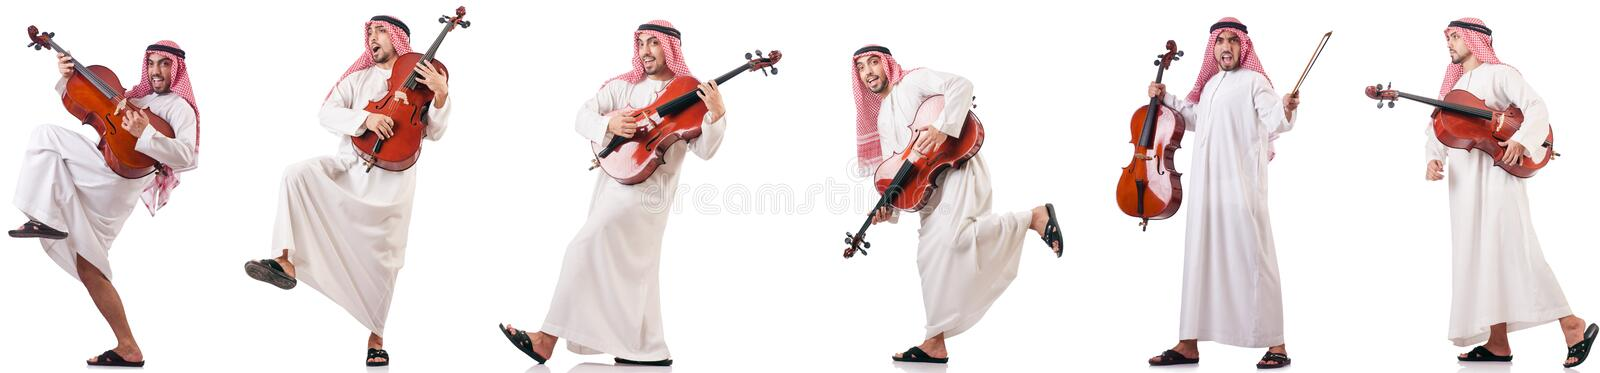 The arab man playing cello isolated on white. Arab man playing cello isolated on white royalty free stock image